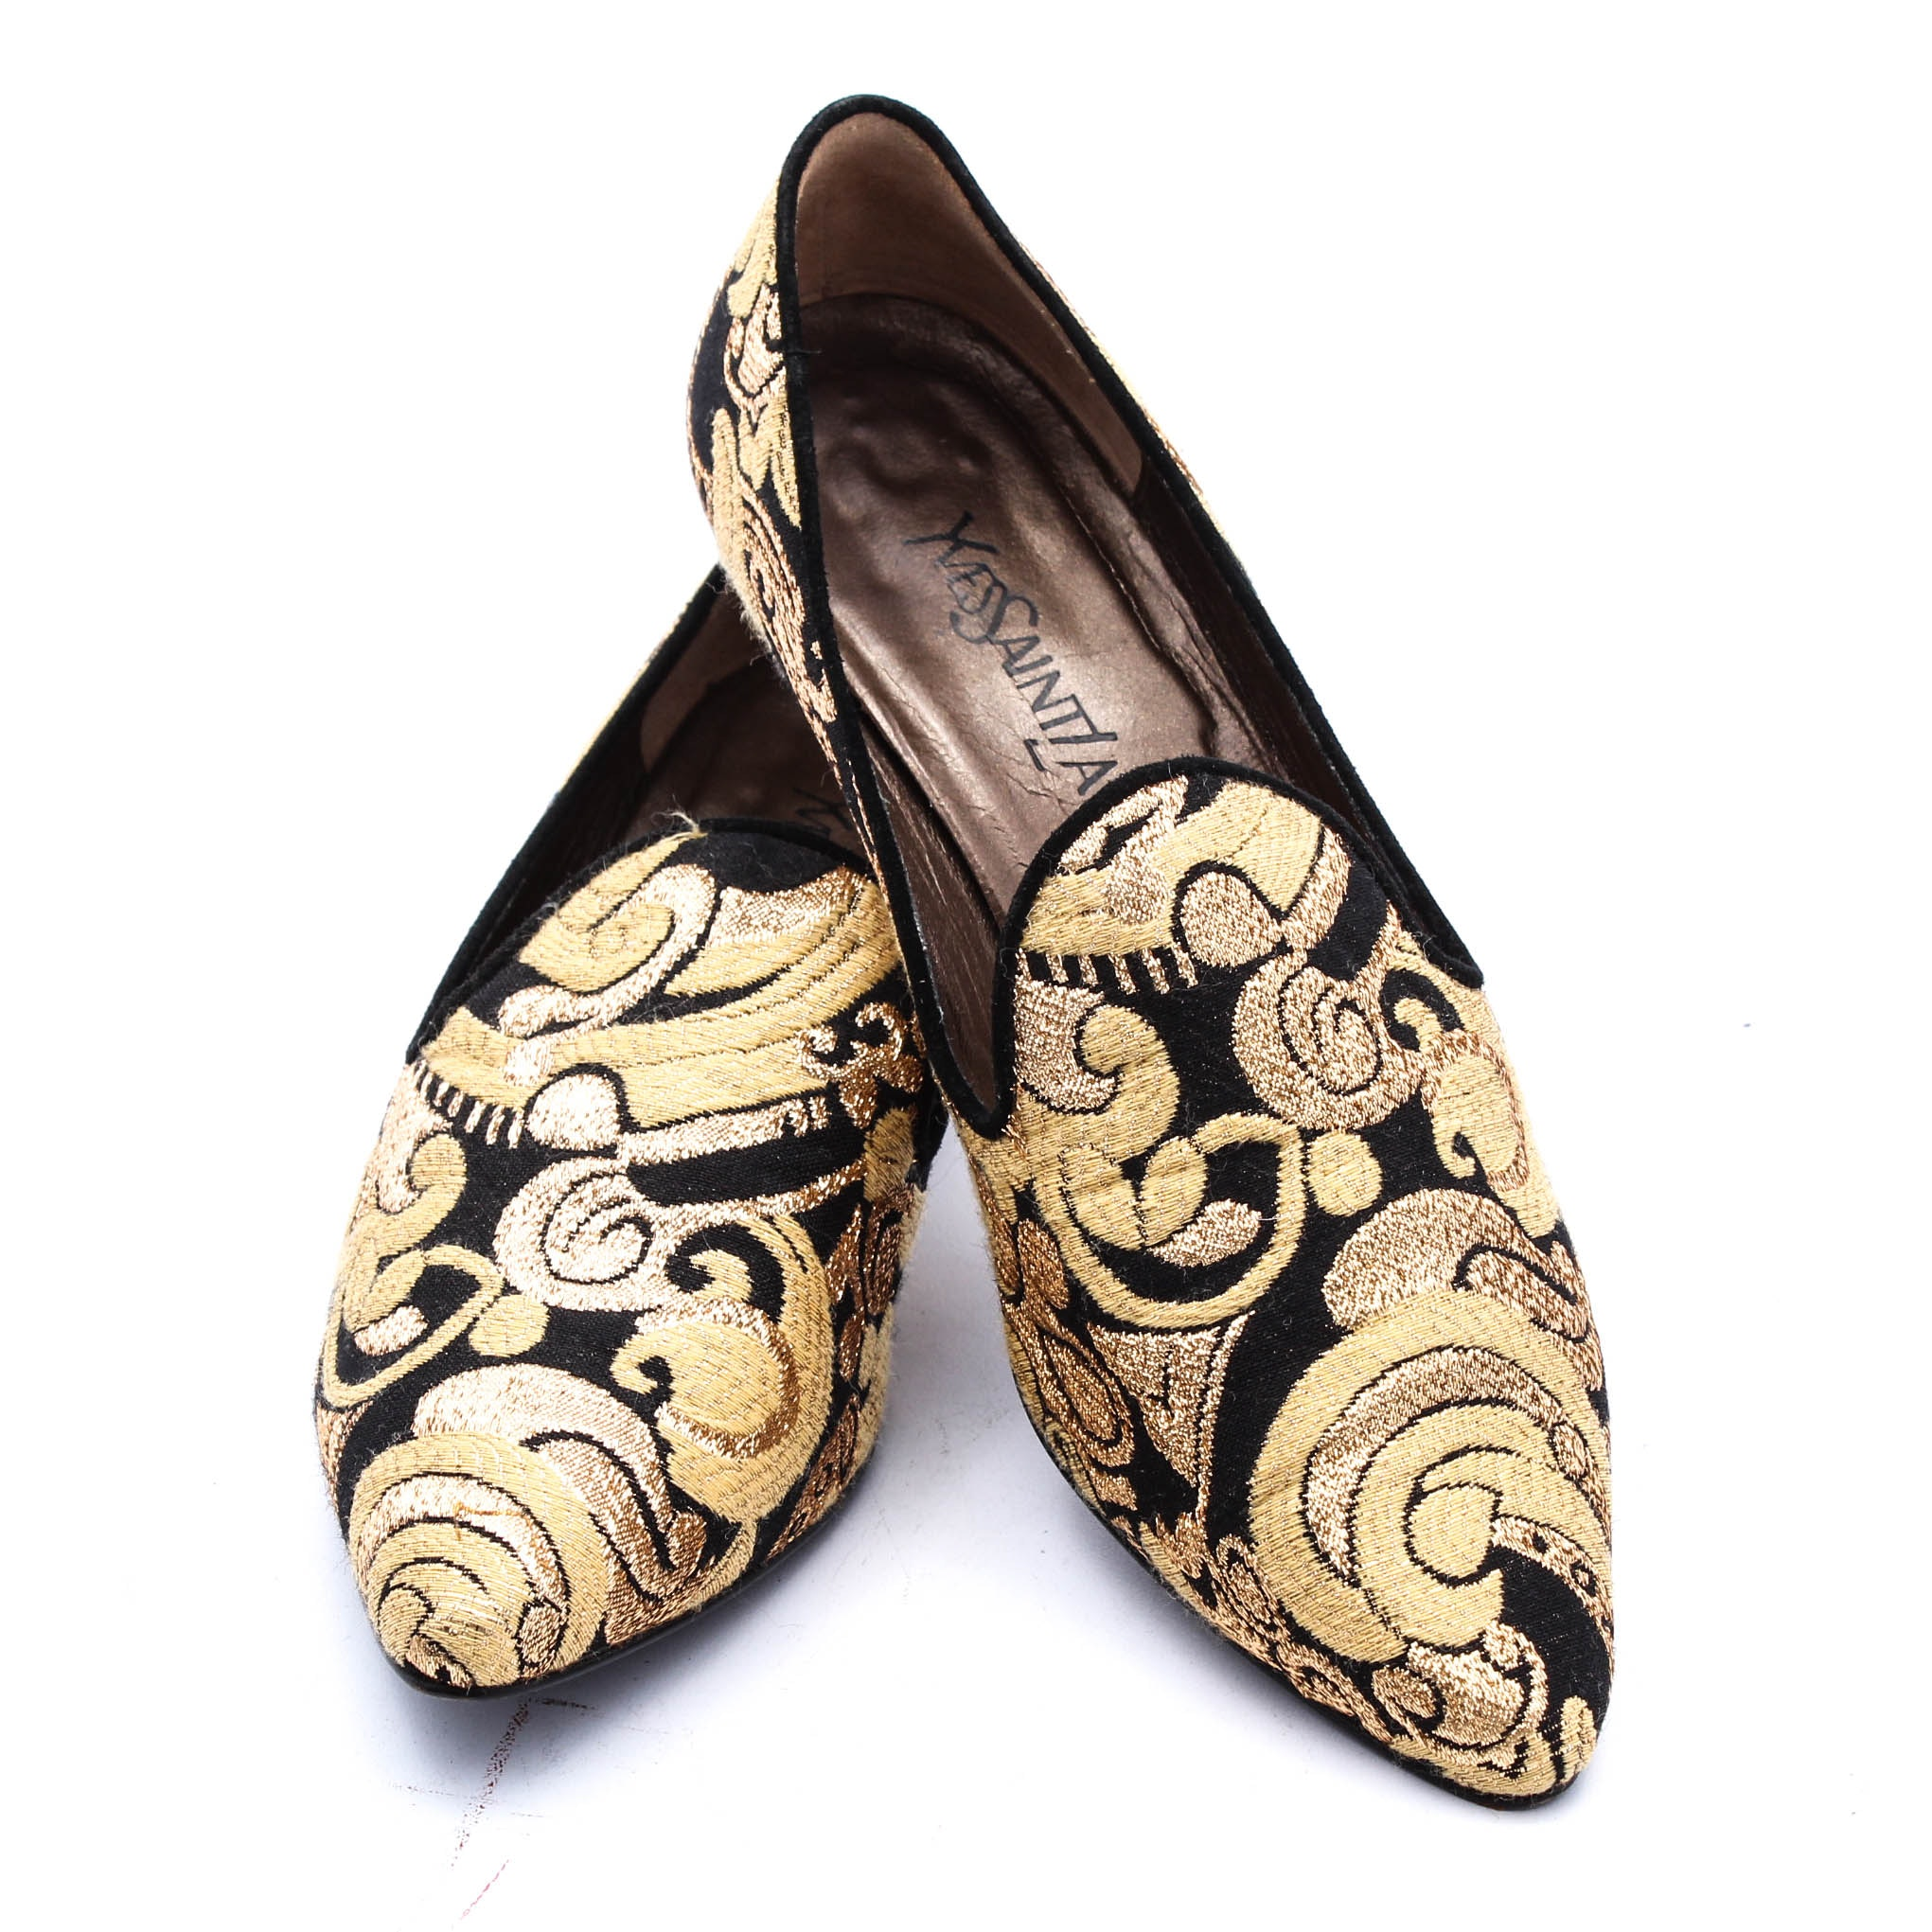 Yves Saint Laurent Adelin Imperial Brocade Loafers